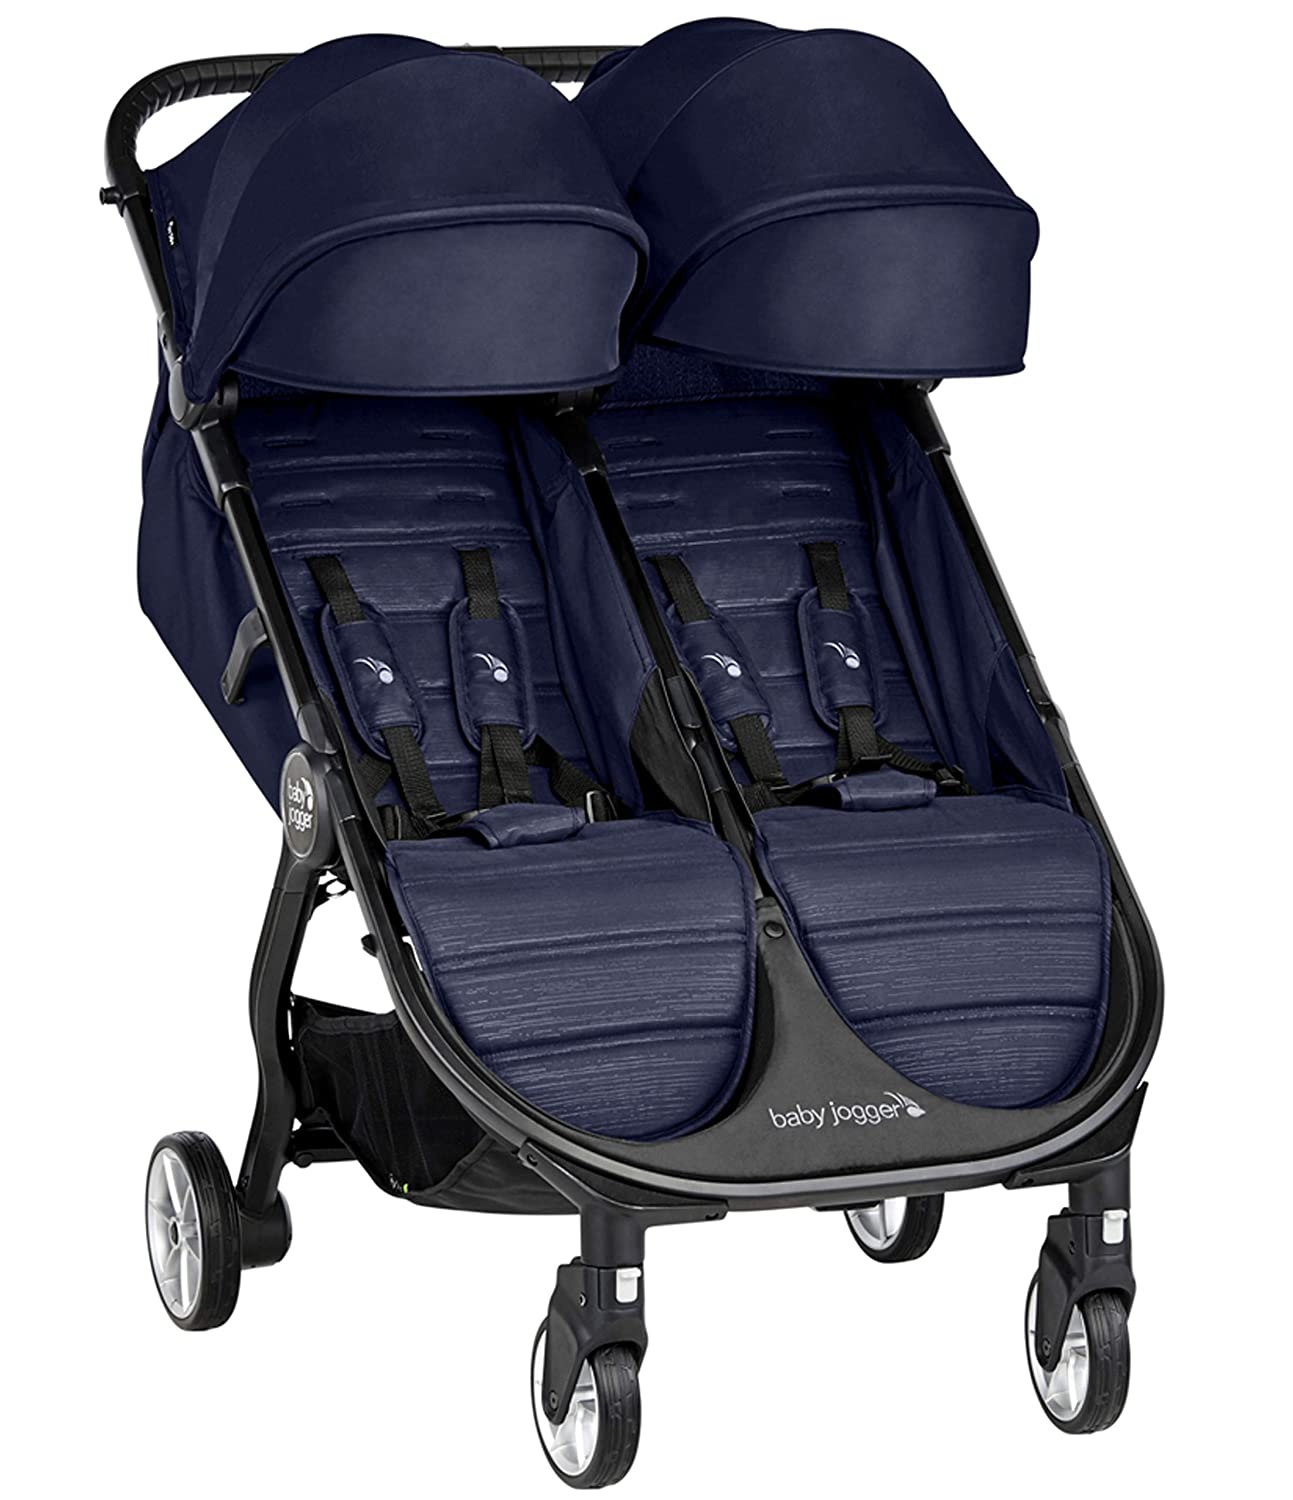 Baby Jogger City Tour 2 - Silla de paseo doble: Amazon.es: Bebé